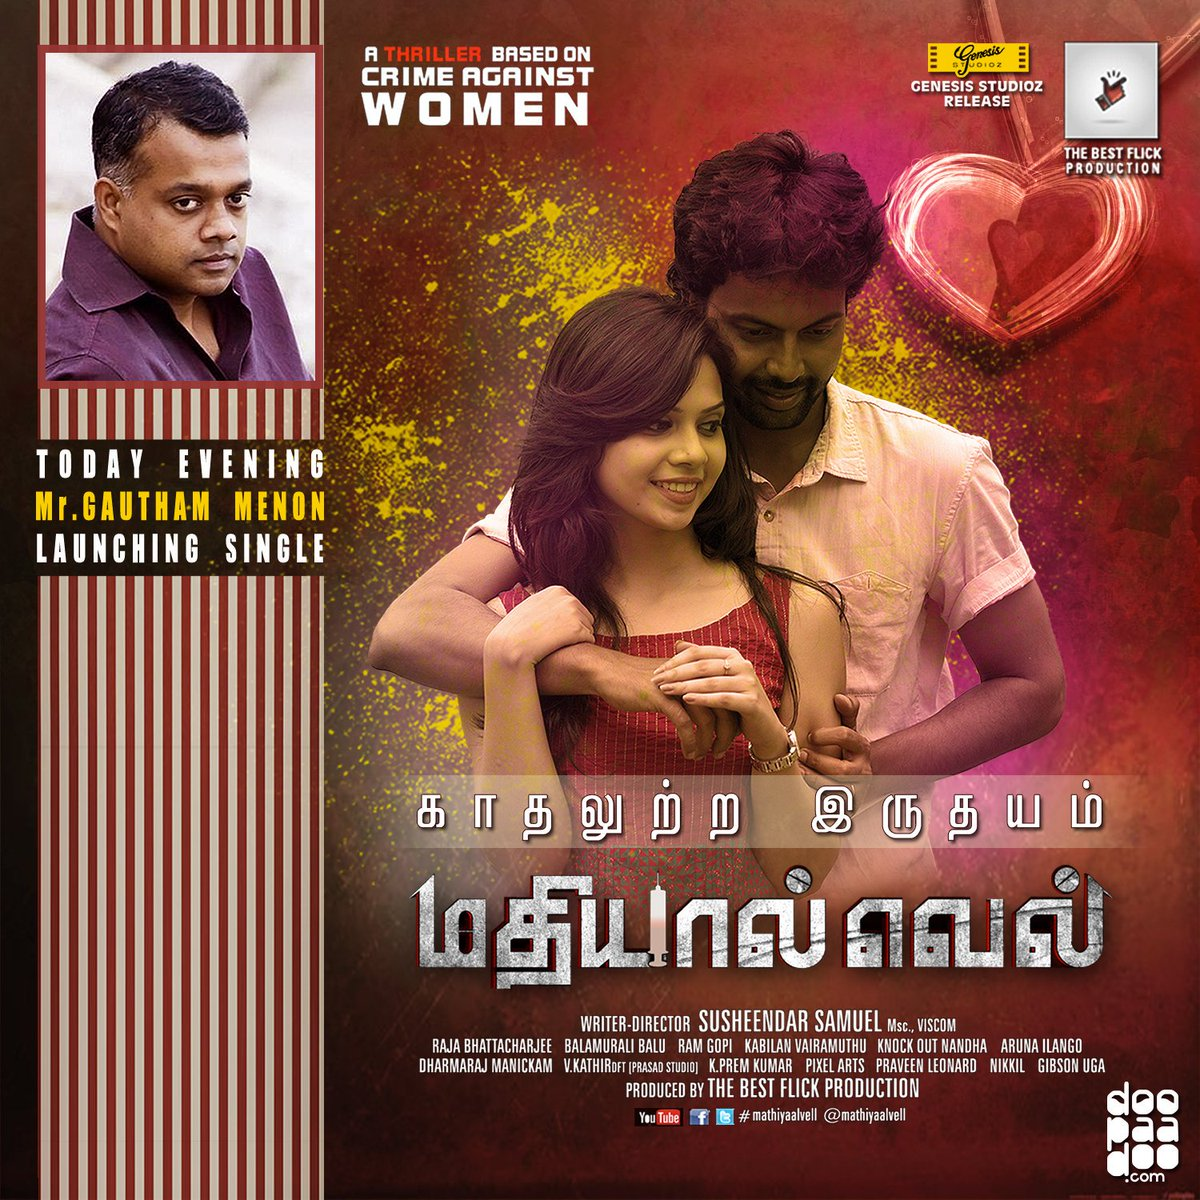 #MathiyaalVell Single Trackto be launched by Director @menongautham  by Today Evening. Single Track Promo Song - https://t.co/UBWPO1Xk6E https://t.co/rbqj1CutKD